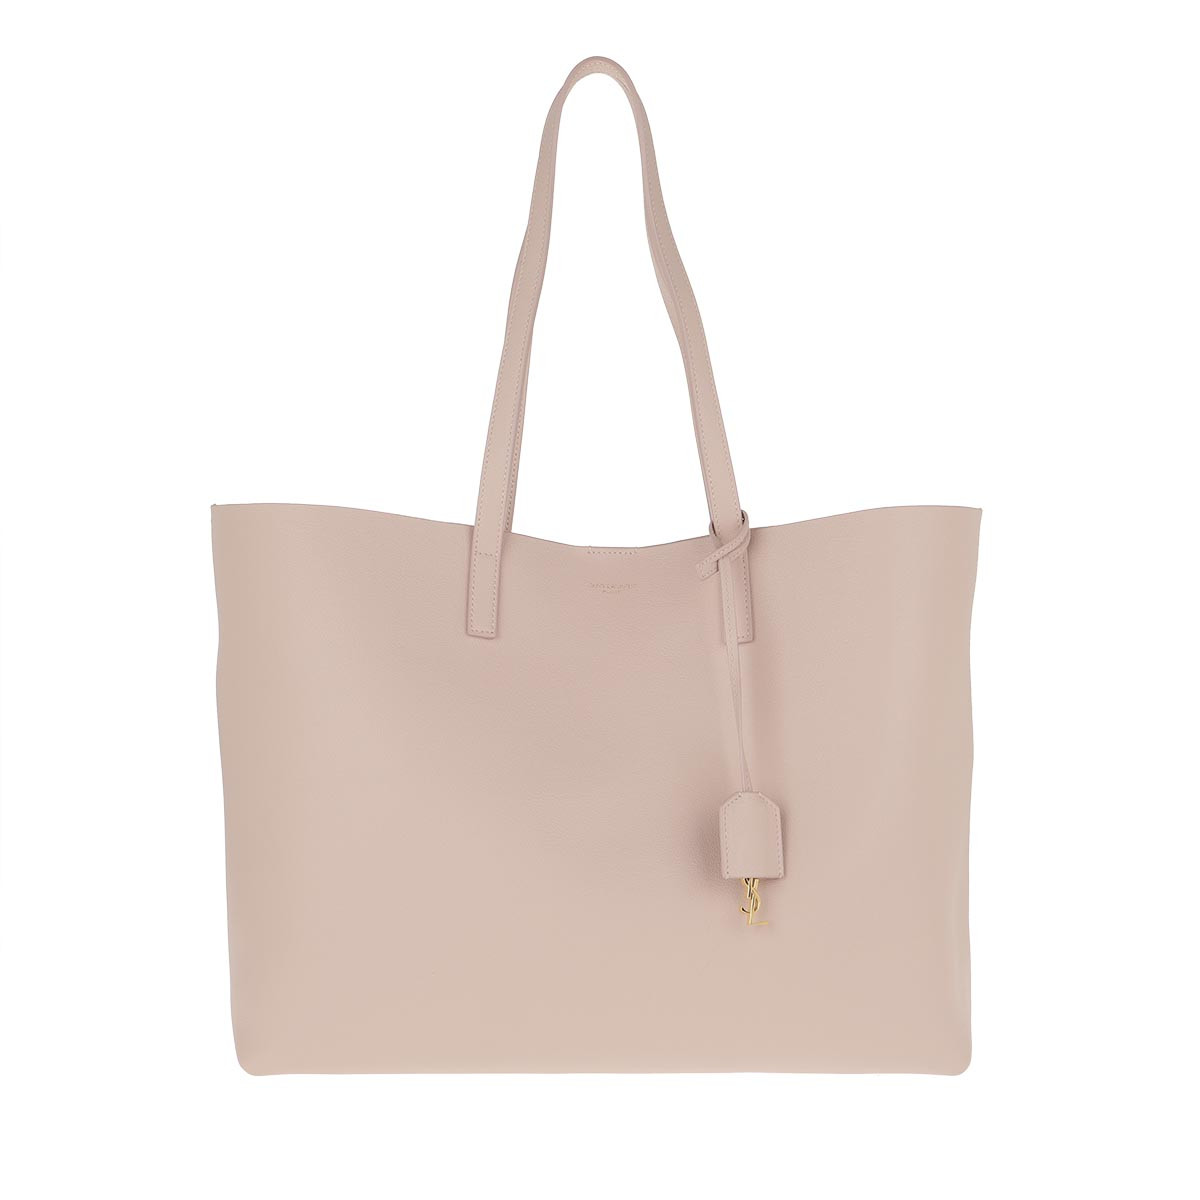 Saint Laurent Shopper - East West Medium Tote Leather Marble Pink - in rosa - für Damen